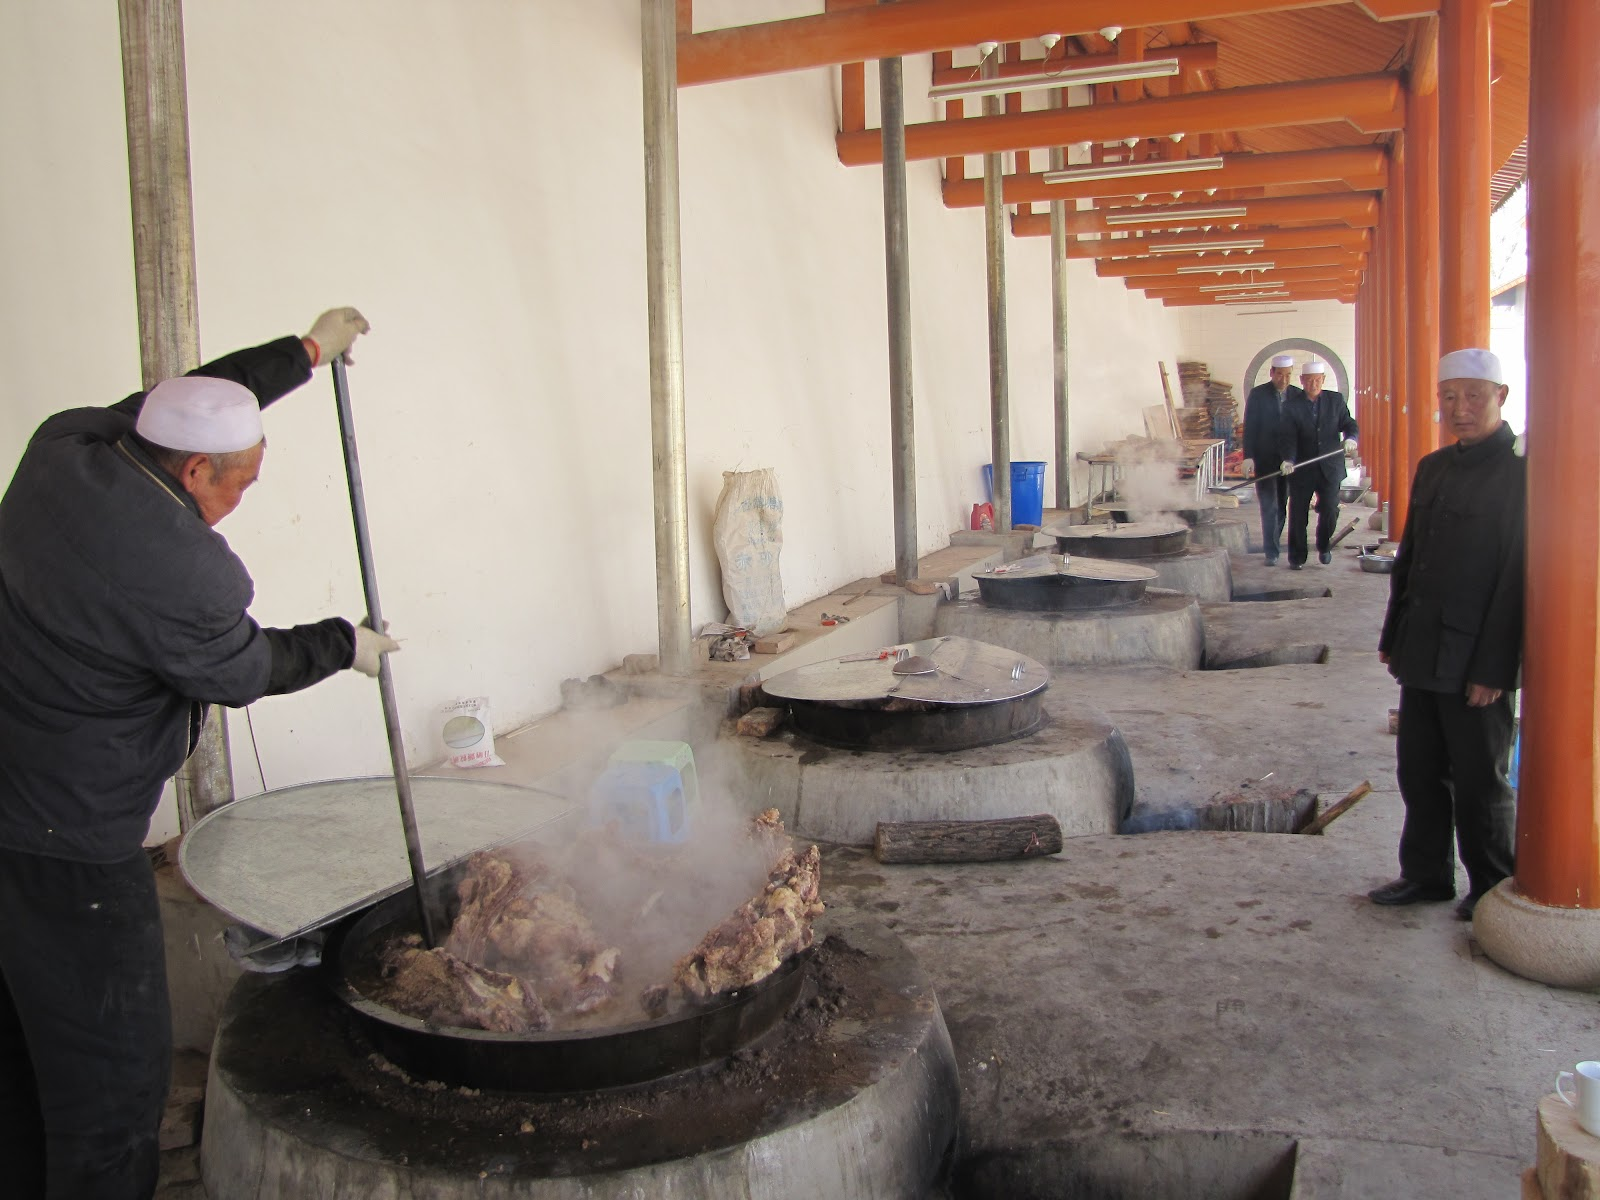 Stirring large pots of beef before the festival